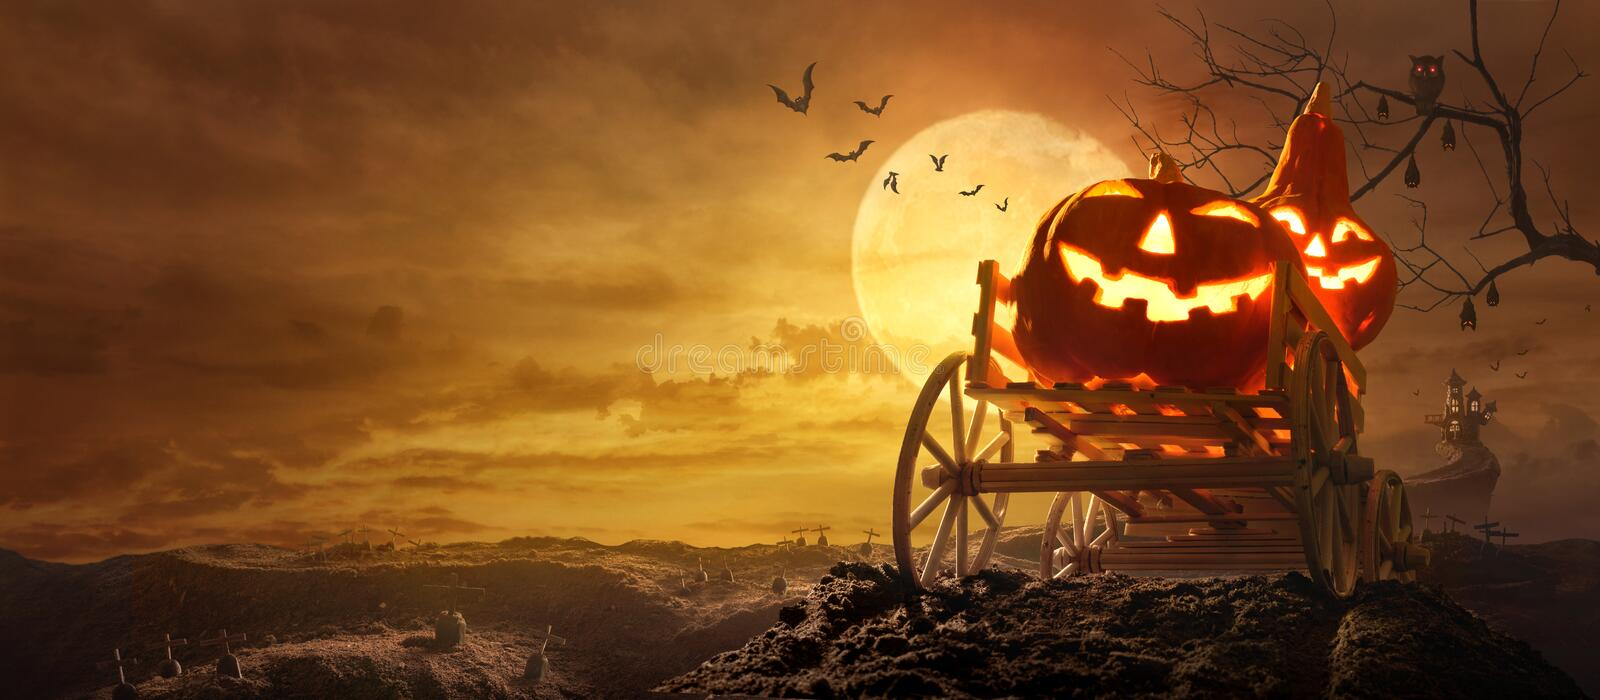 Halloween pumpkins on farm wagon going through Stretched road gr royalty free stock photo